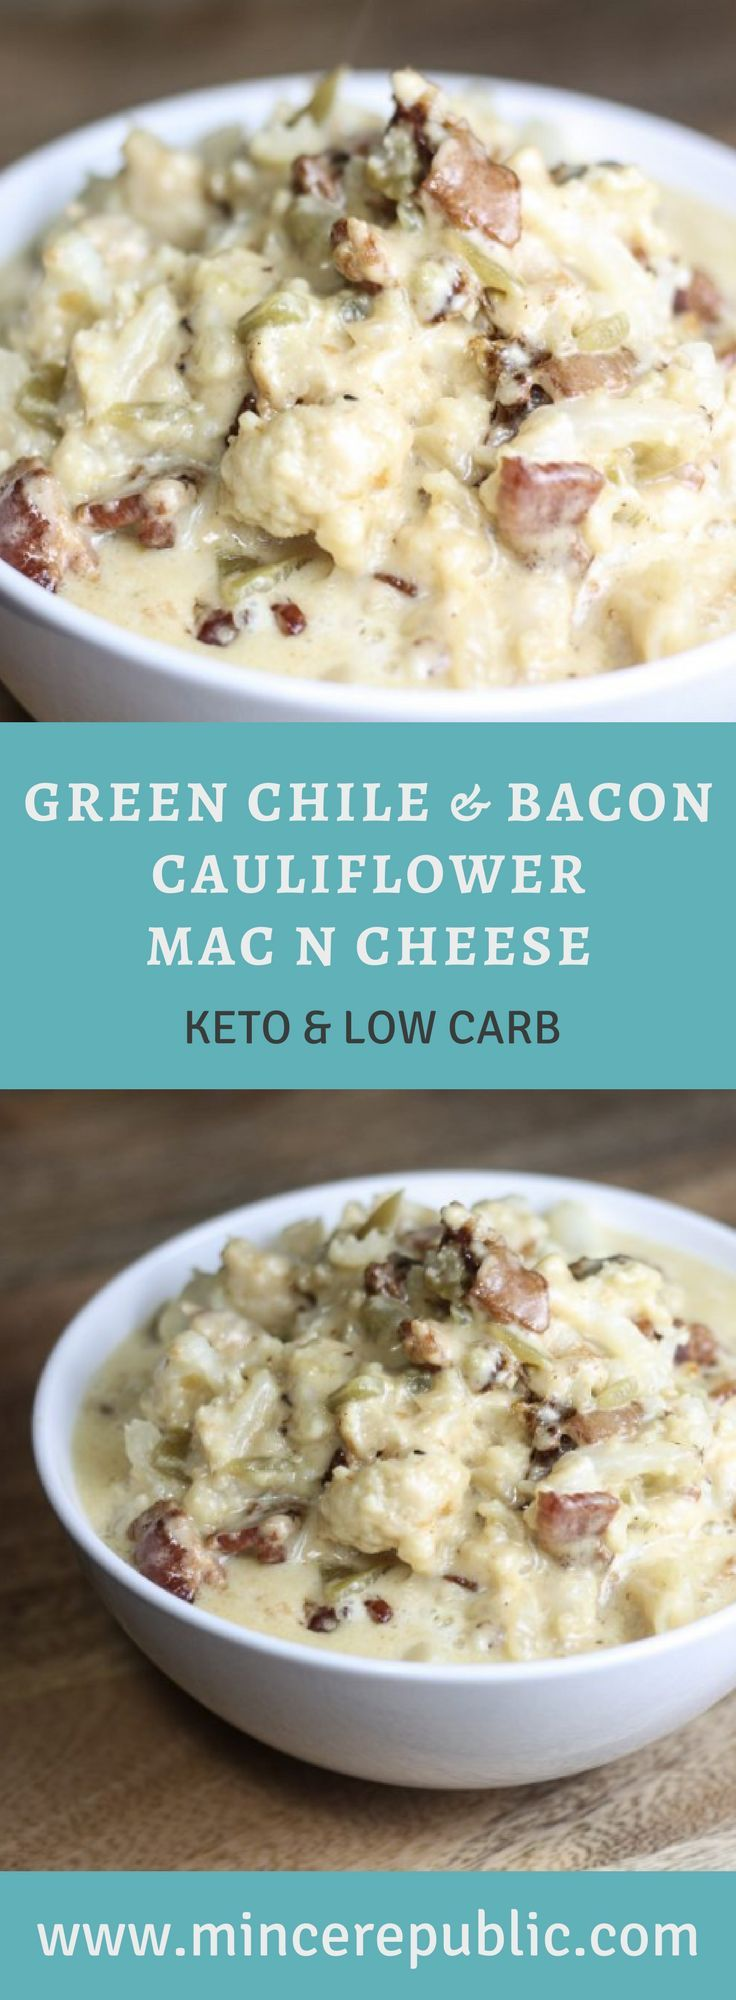 Green Chile & Bacon Cauliflower Mac n Cheese Recipe   An easy #lowcarb and #keto friendly macaroni and cheese recipe!   mincerepublic.com